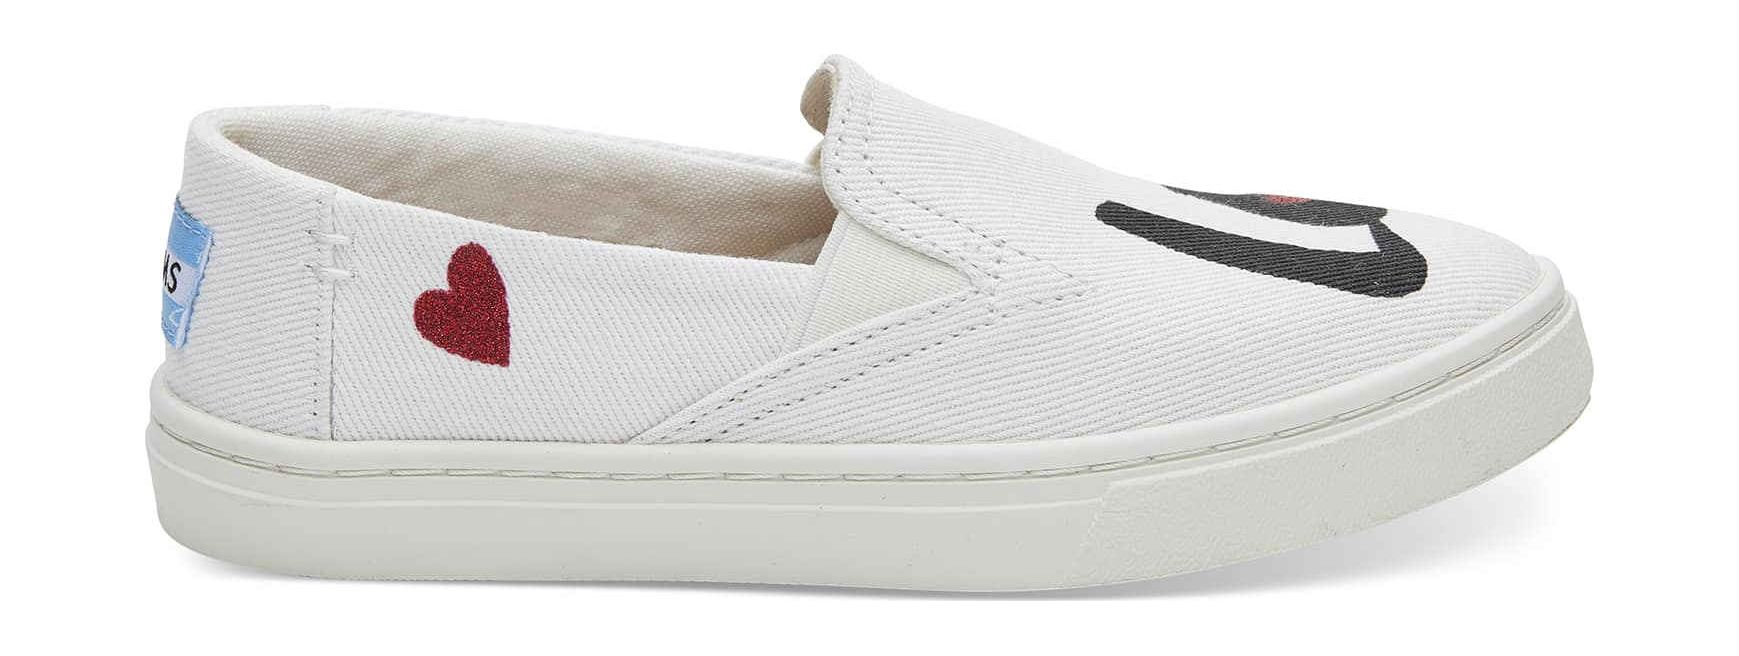 TOMS Love Junior's Luca Slipon White Denim 32,5